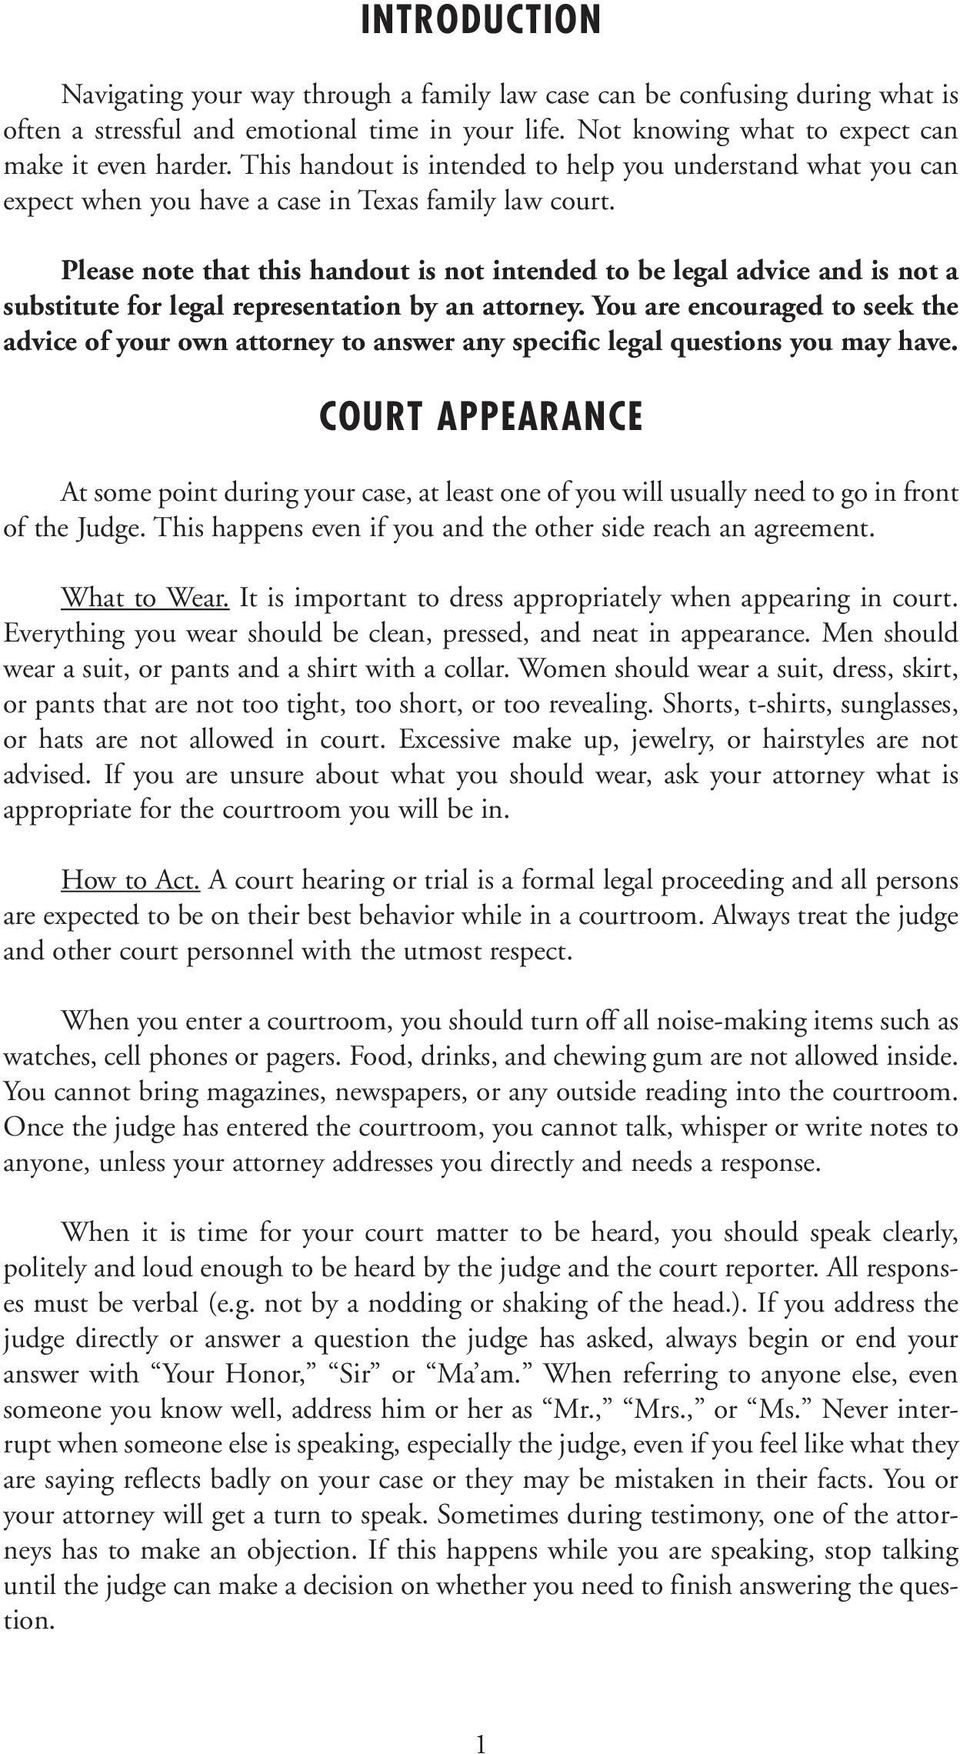 Please note that this handout is not intended to be legal advice and is not a substitute for legal representation by an attorney.